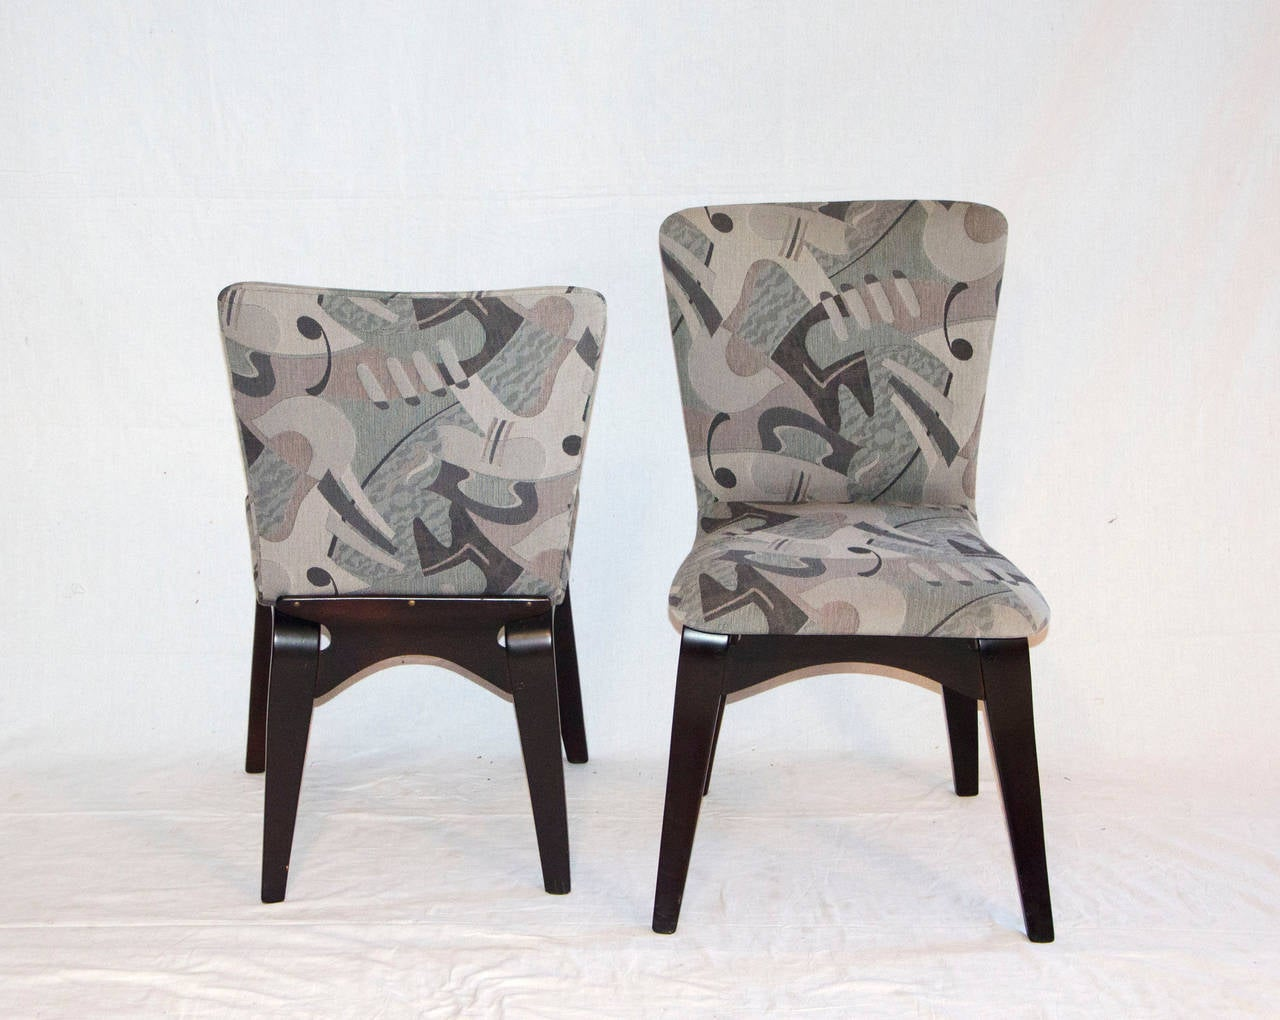 Mid Century Bent Ply Dining Chairs - Thaden-Jordan In Good Condition For Sale In Crockett, CA